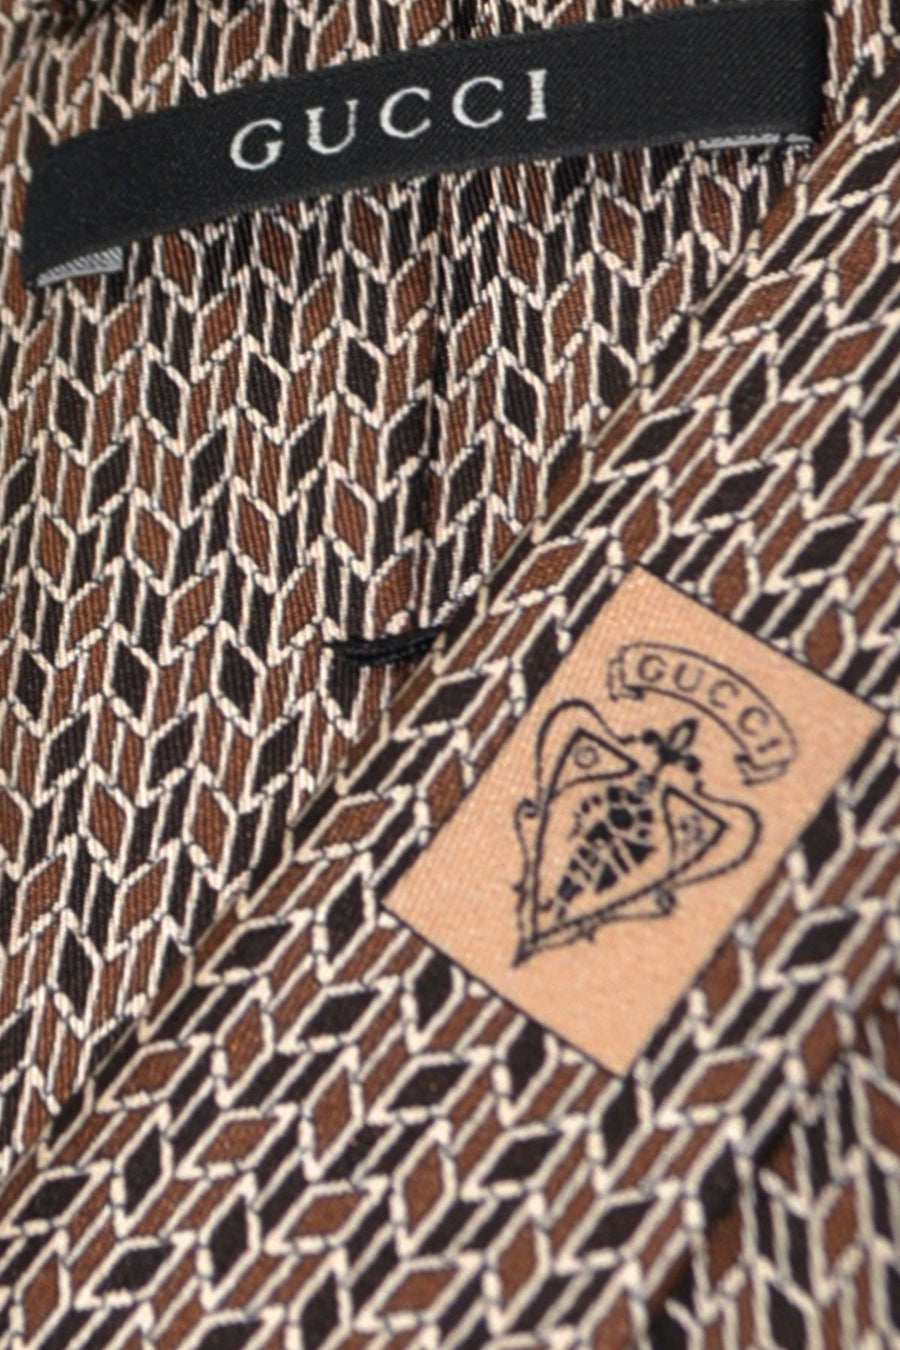 Gucci Tie Brown Silver Geometric Design